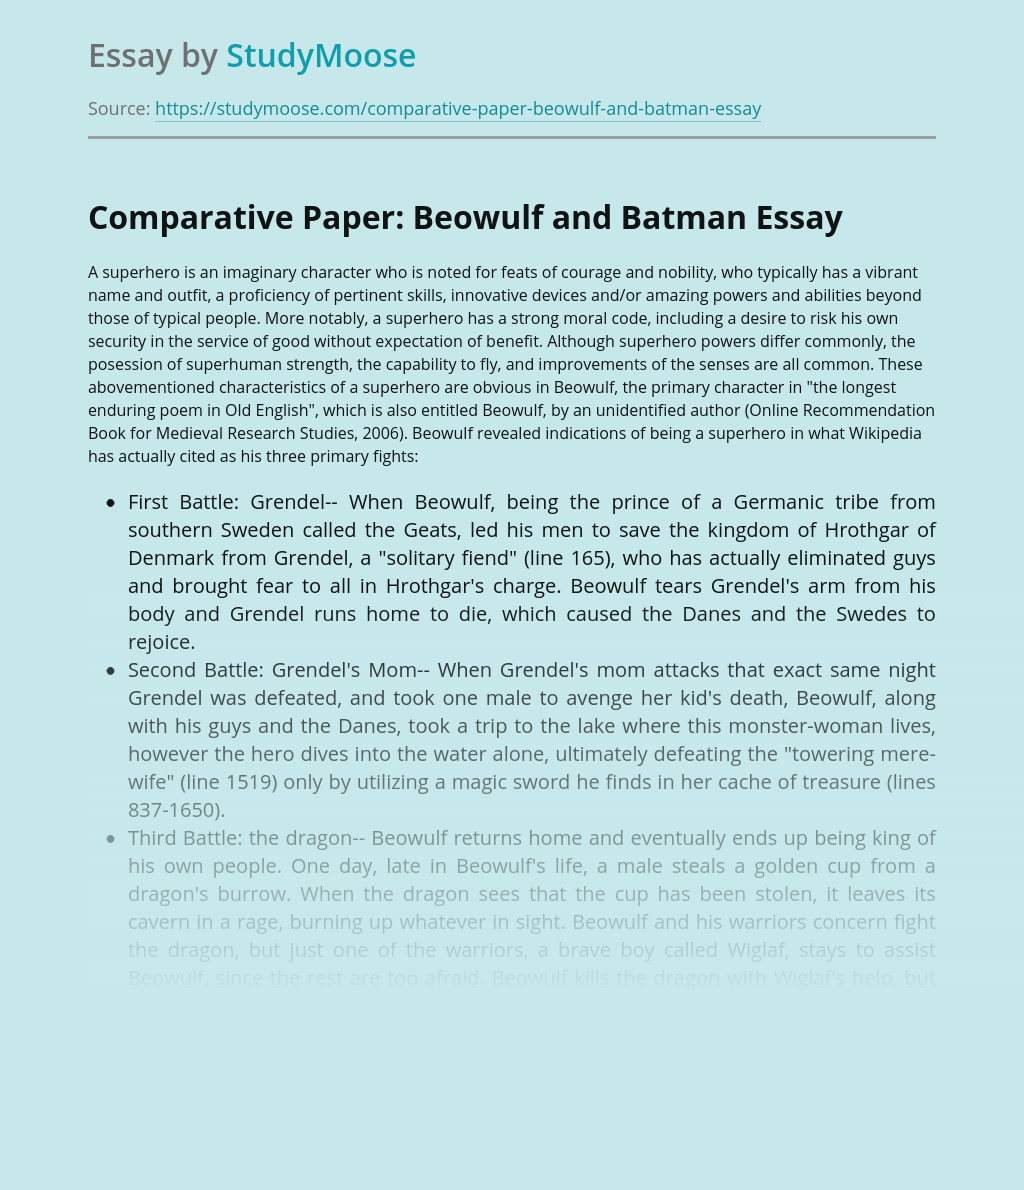 Comparative Paper: Beowulf and Batman